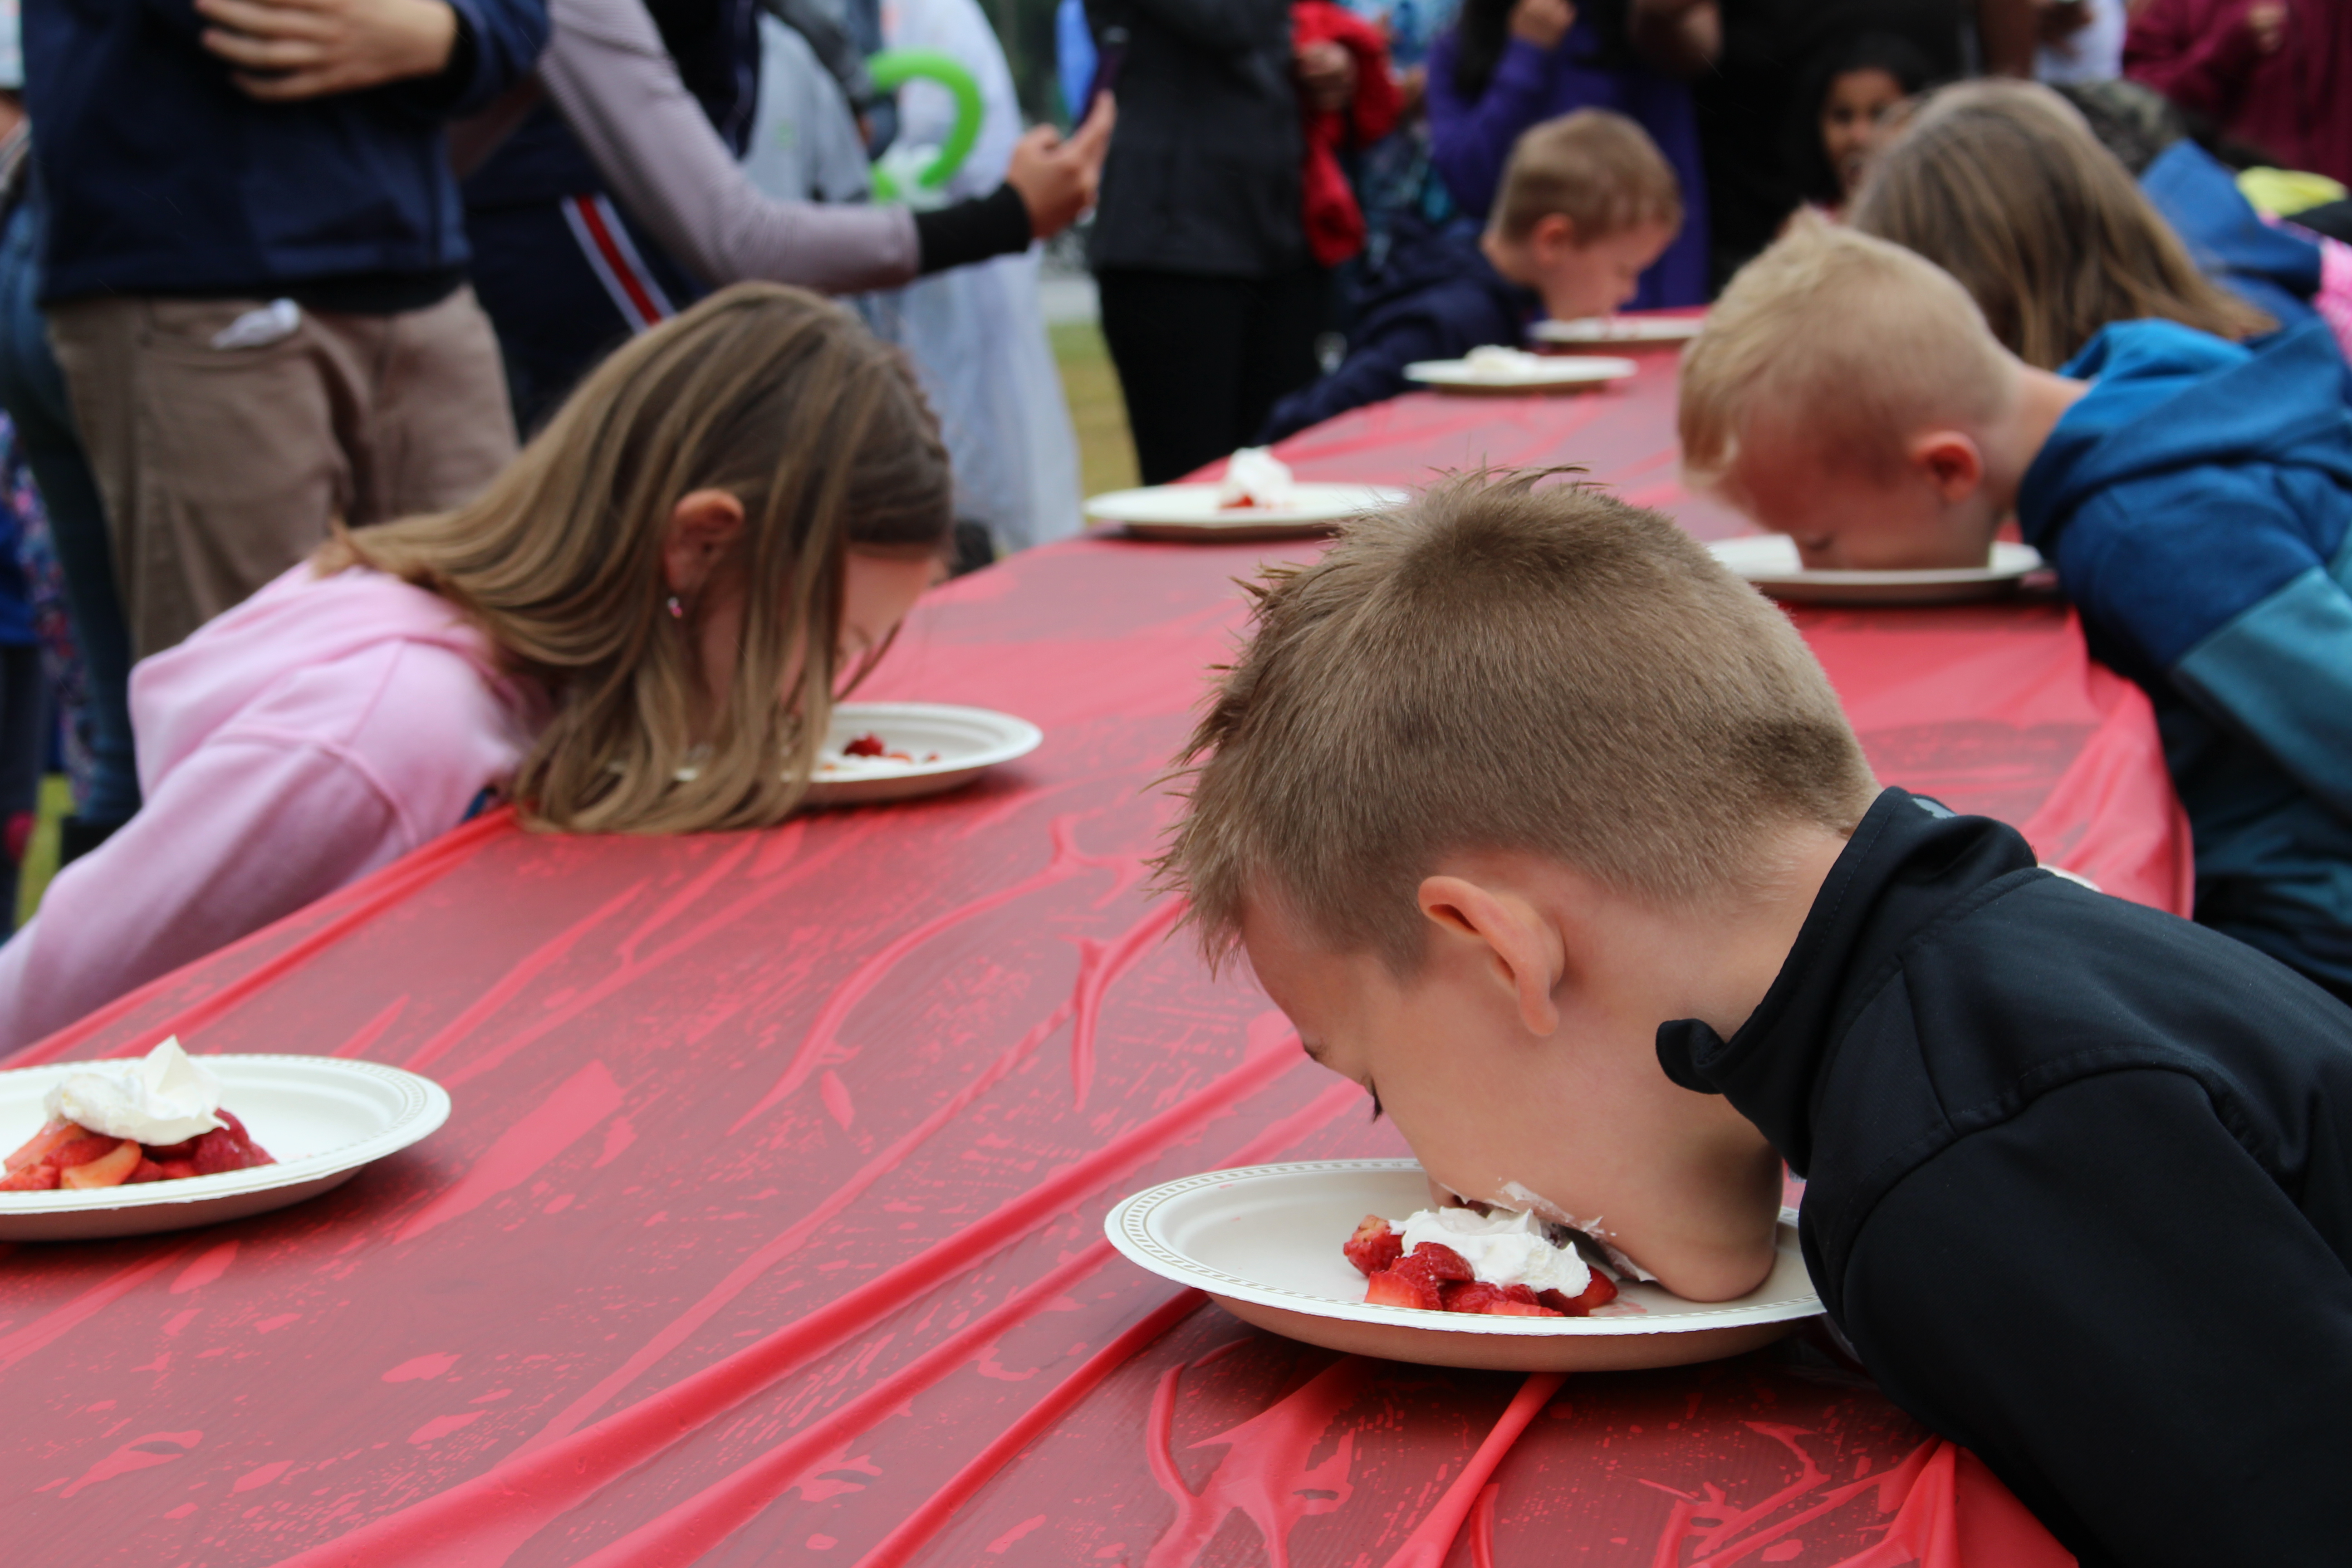 Strawberry Eating Contest at the LaSalle Strawberry Festival